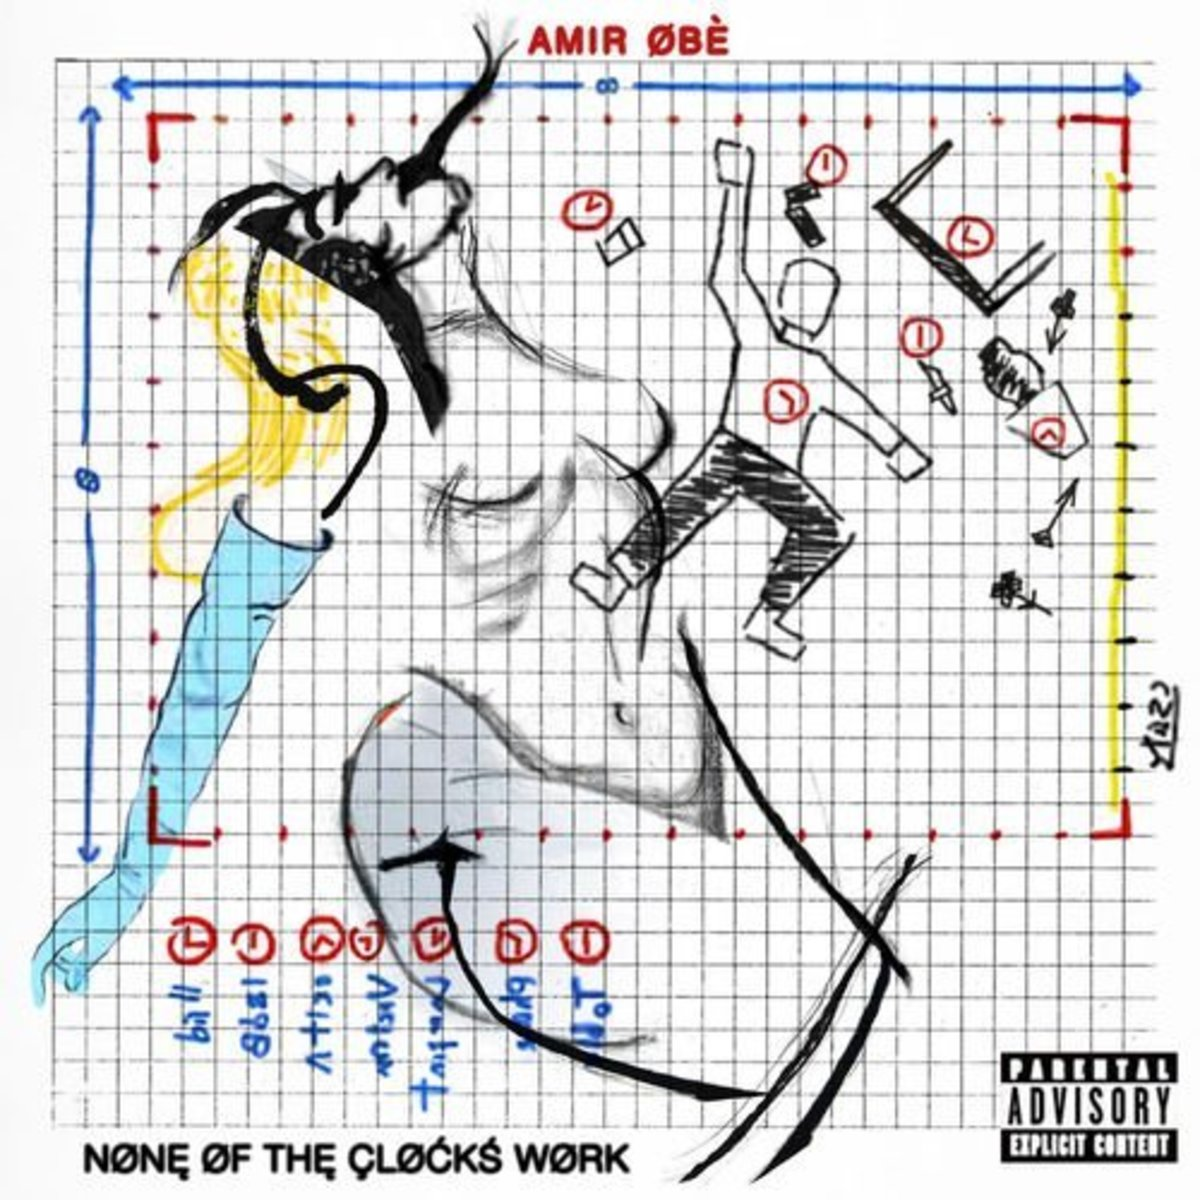 amir-obe-none-of-the-clocks-work.jpg